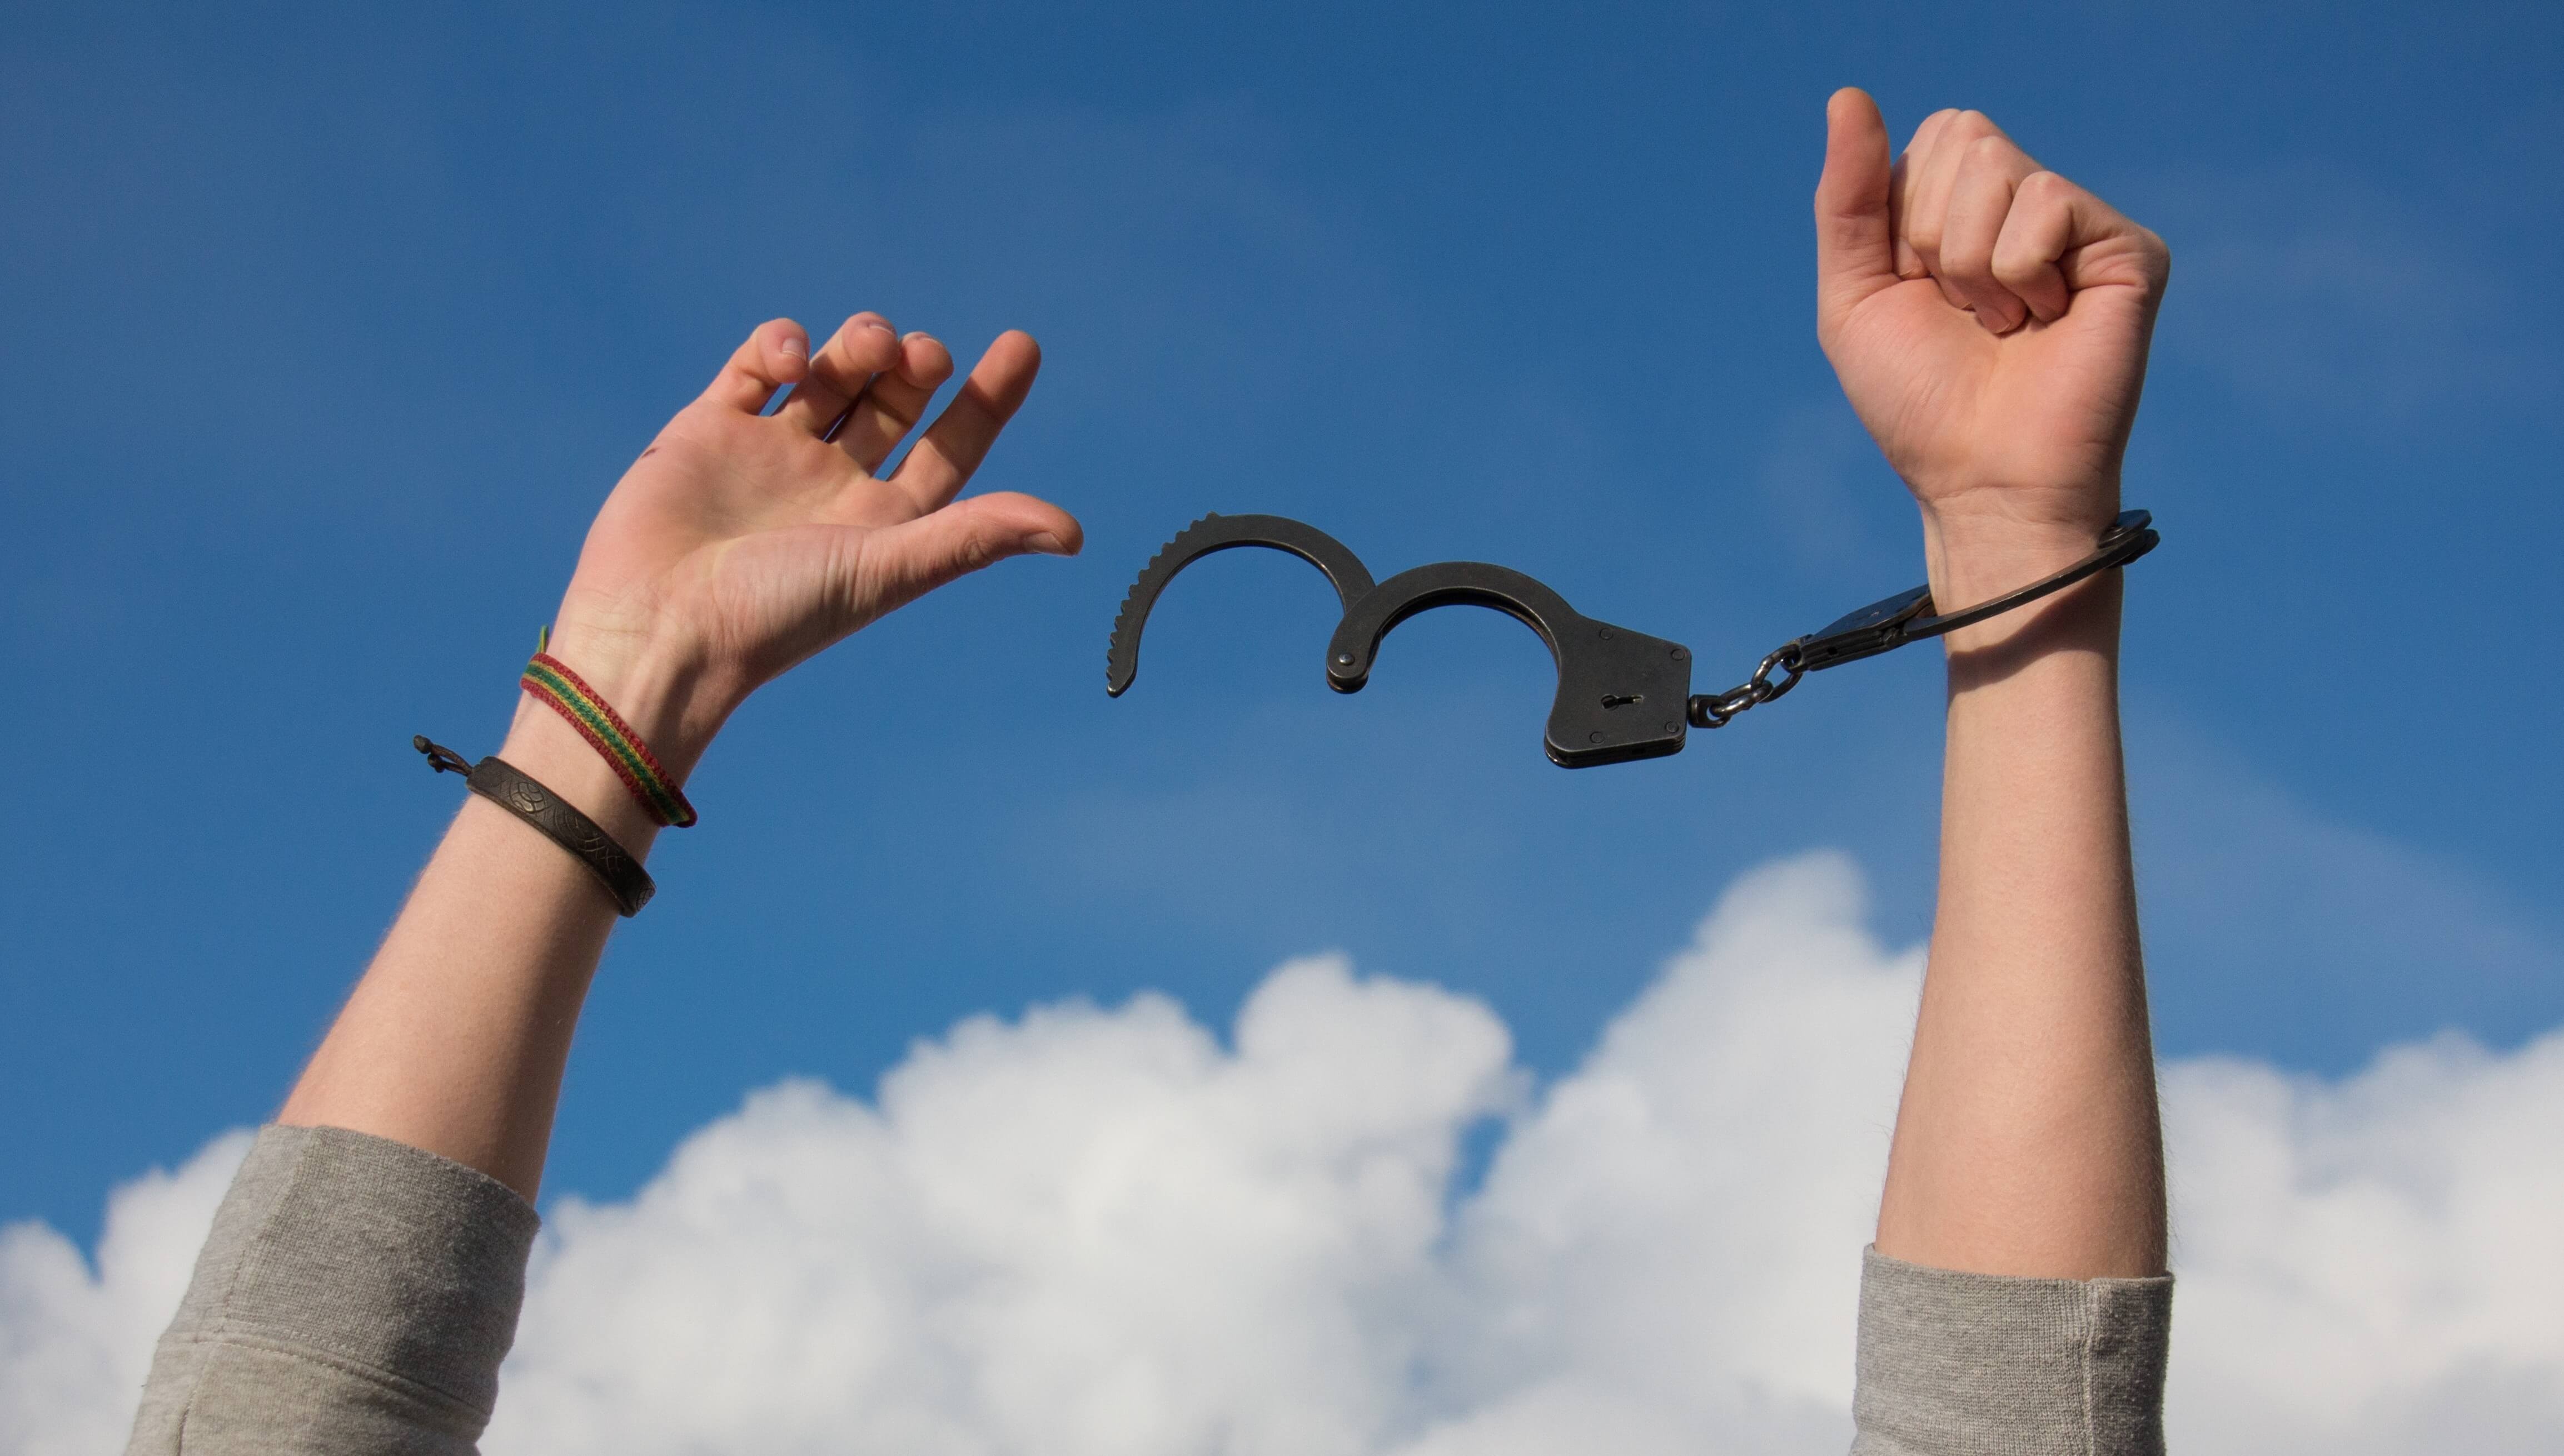 Shackles being released off someone's arms